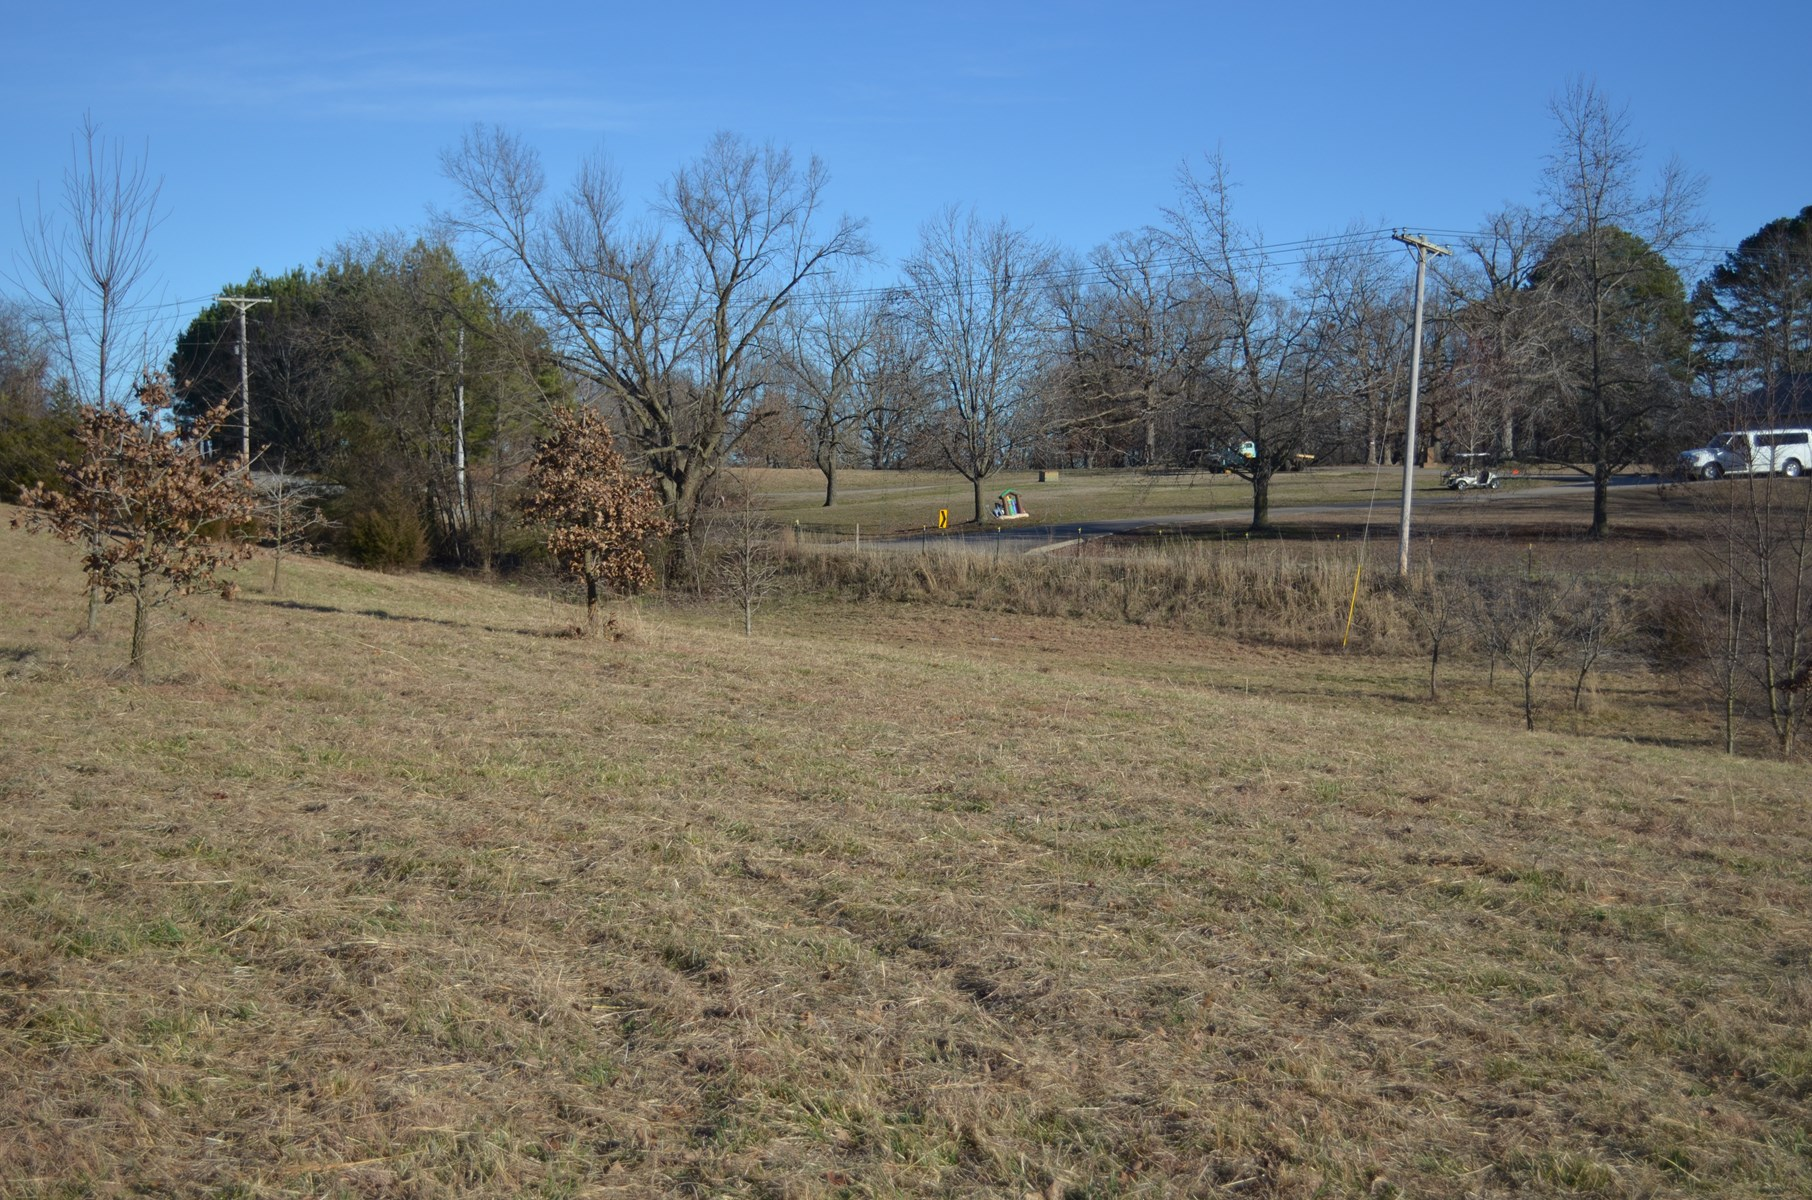 Land for Sale in Benton County - Home Building Lot 3.23 Acre